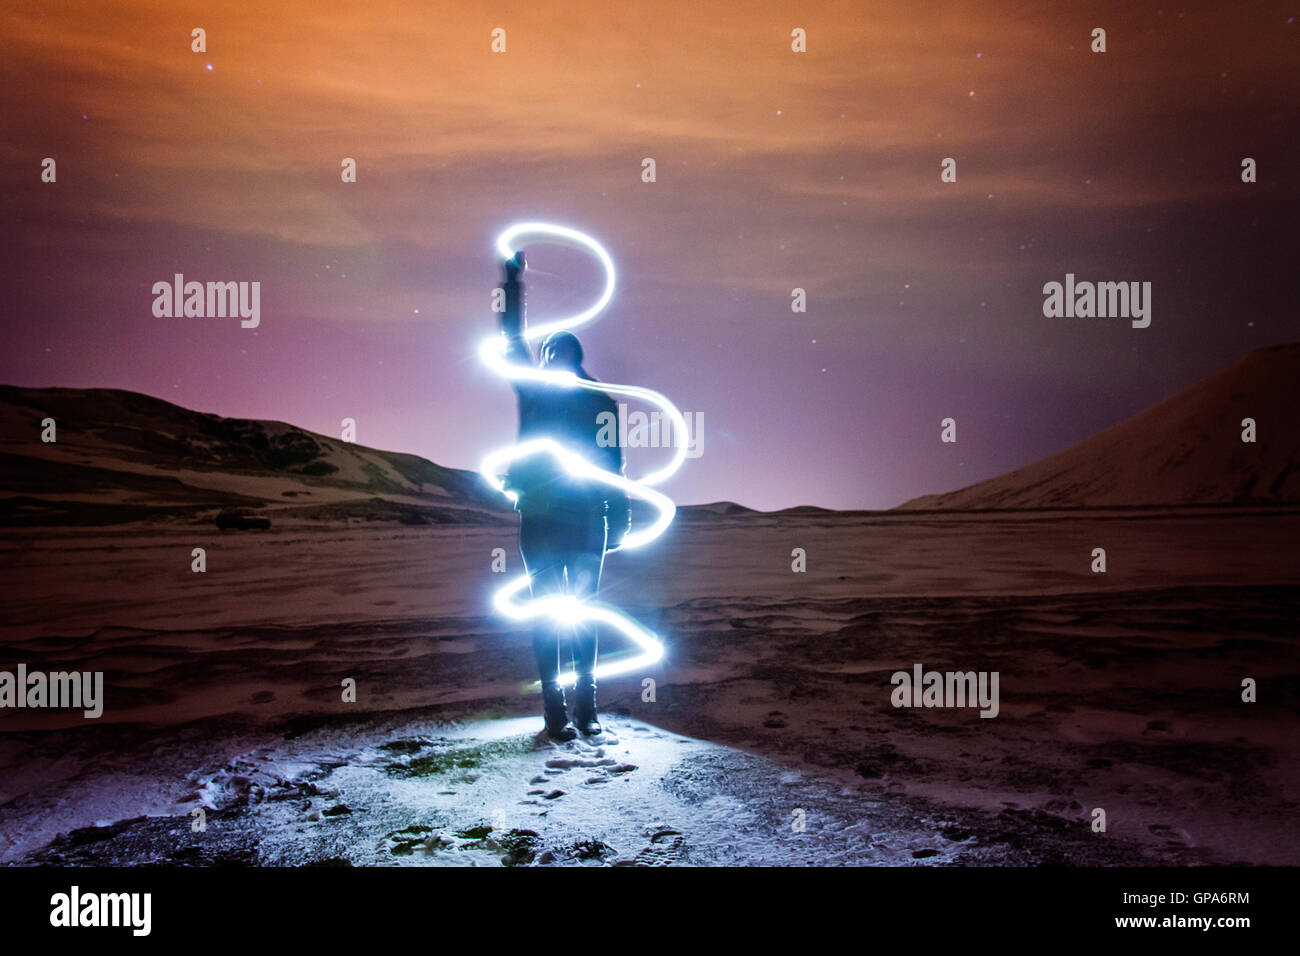 Light painting in Iceland - Stock Image